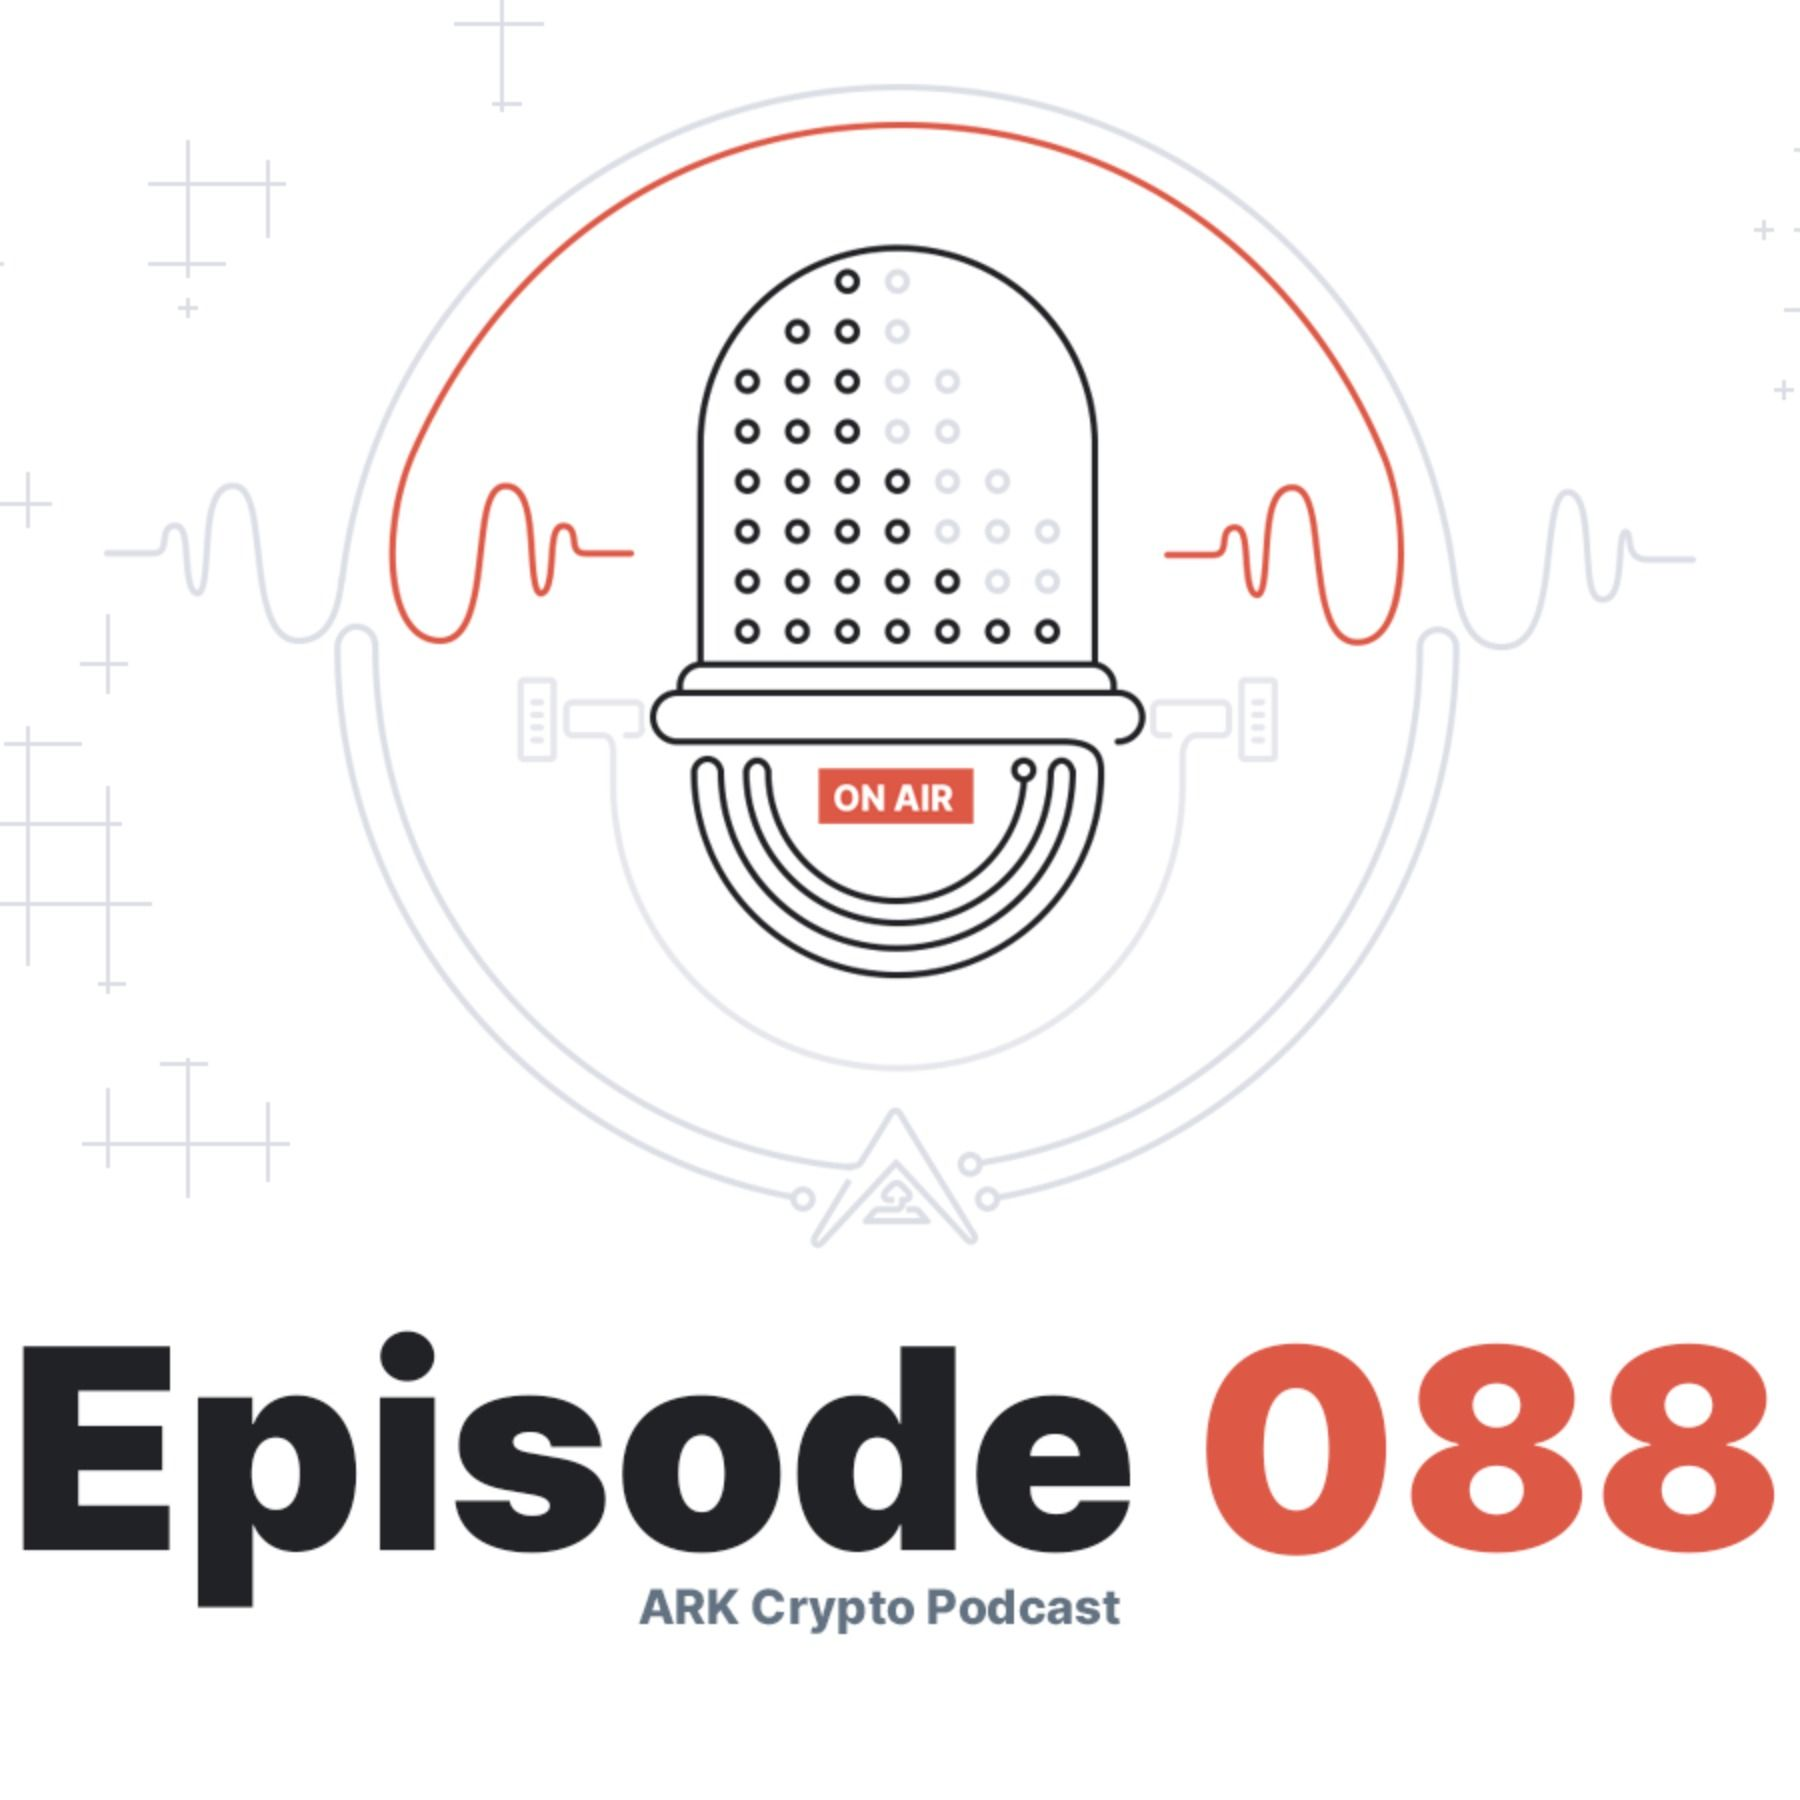 ARK Crypto Podcast #088 - AMA Results with the ARK Team on ChangeNOW Telegram